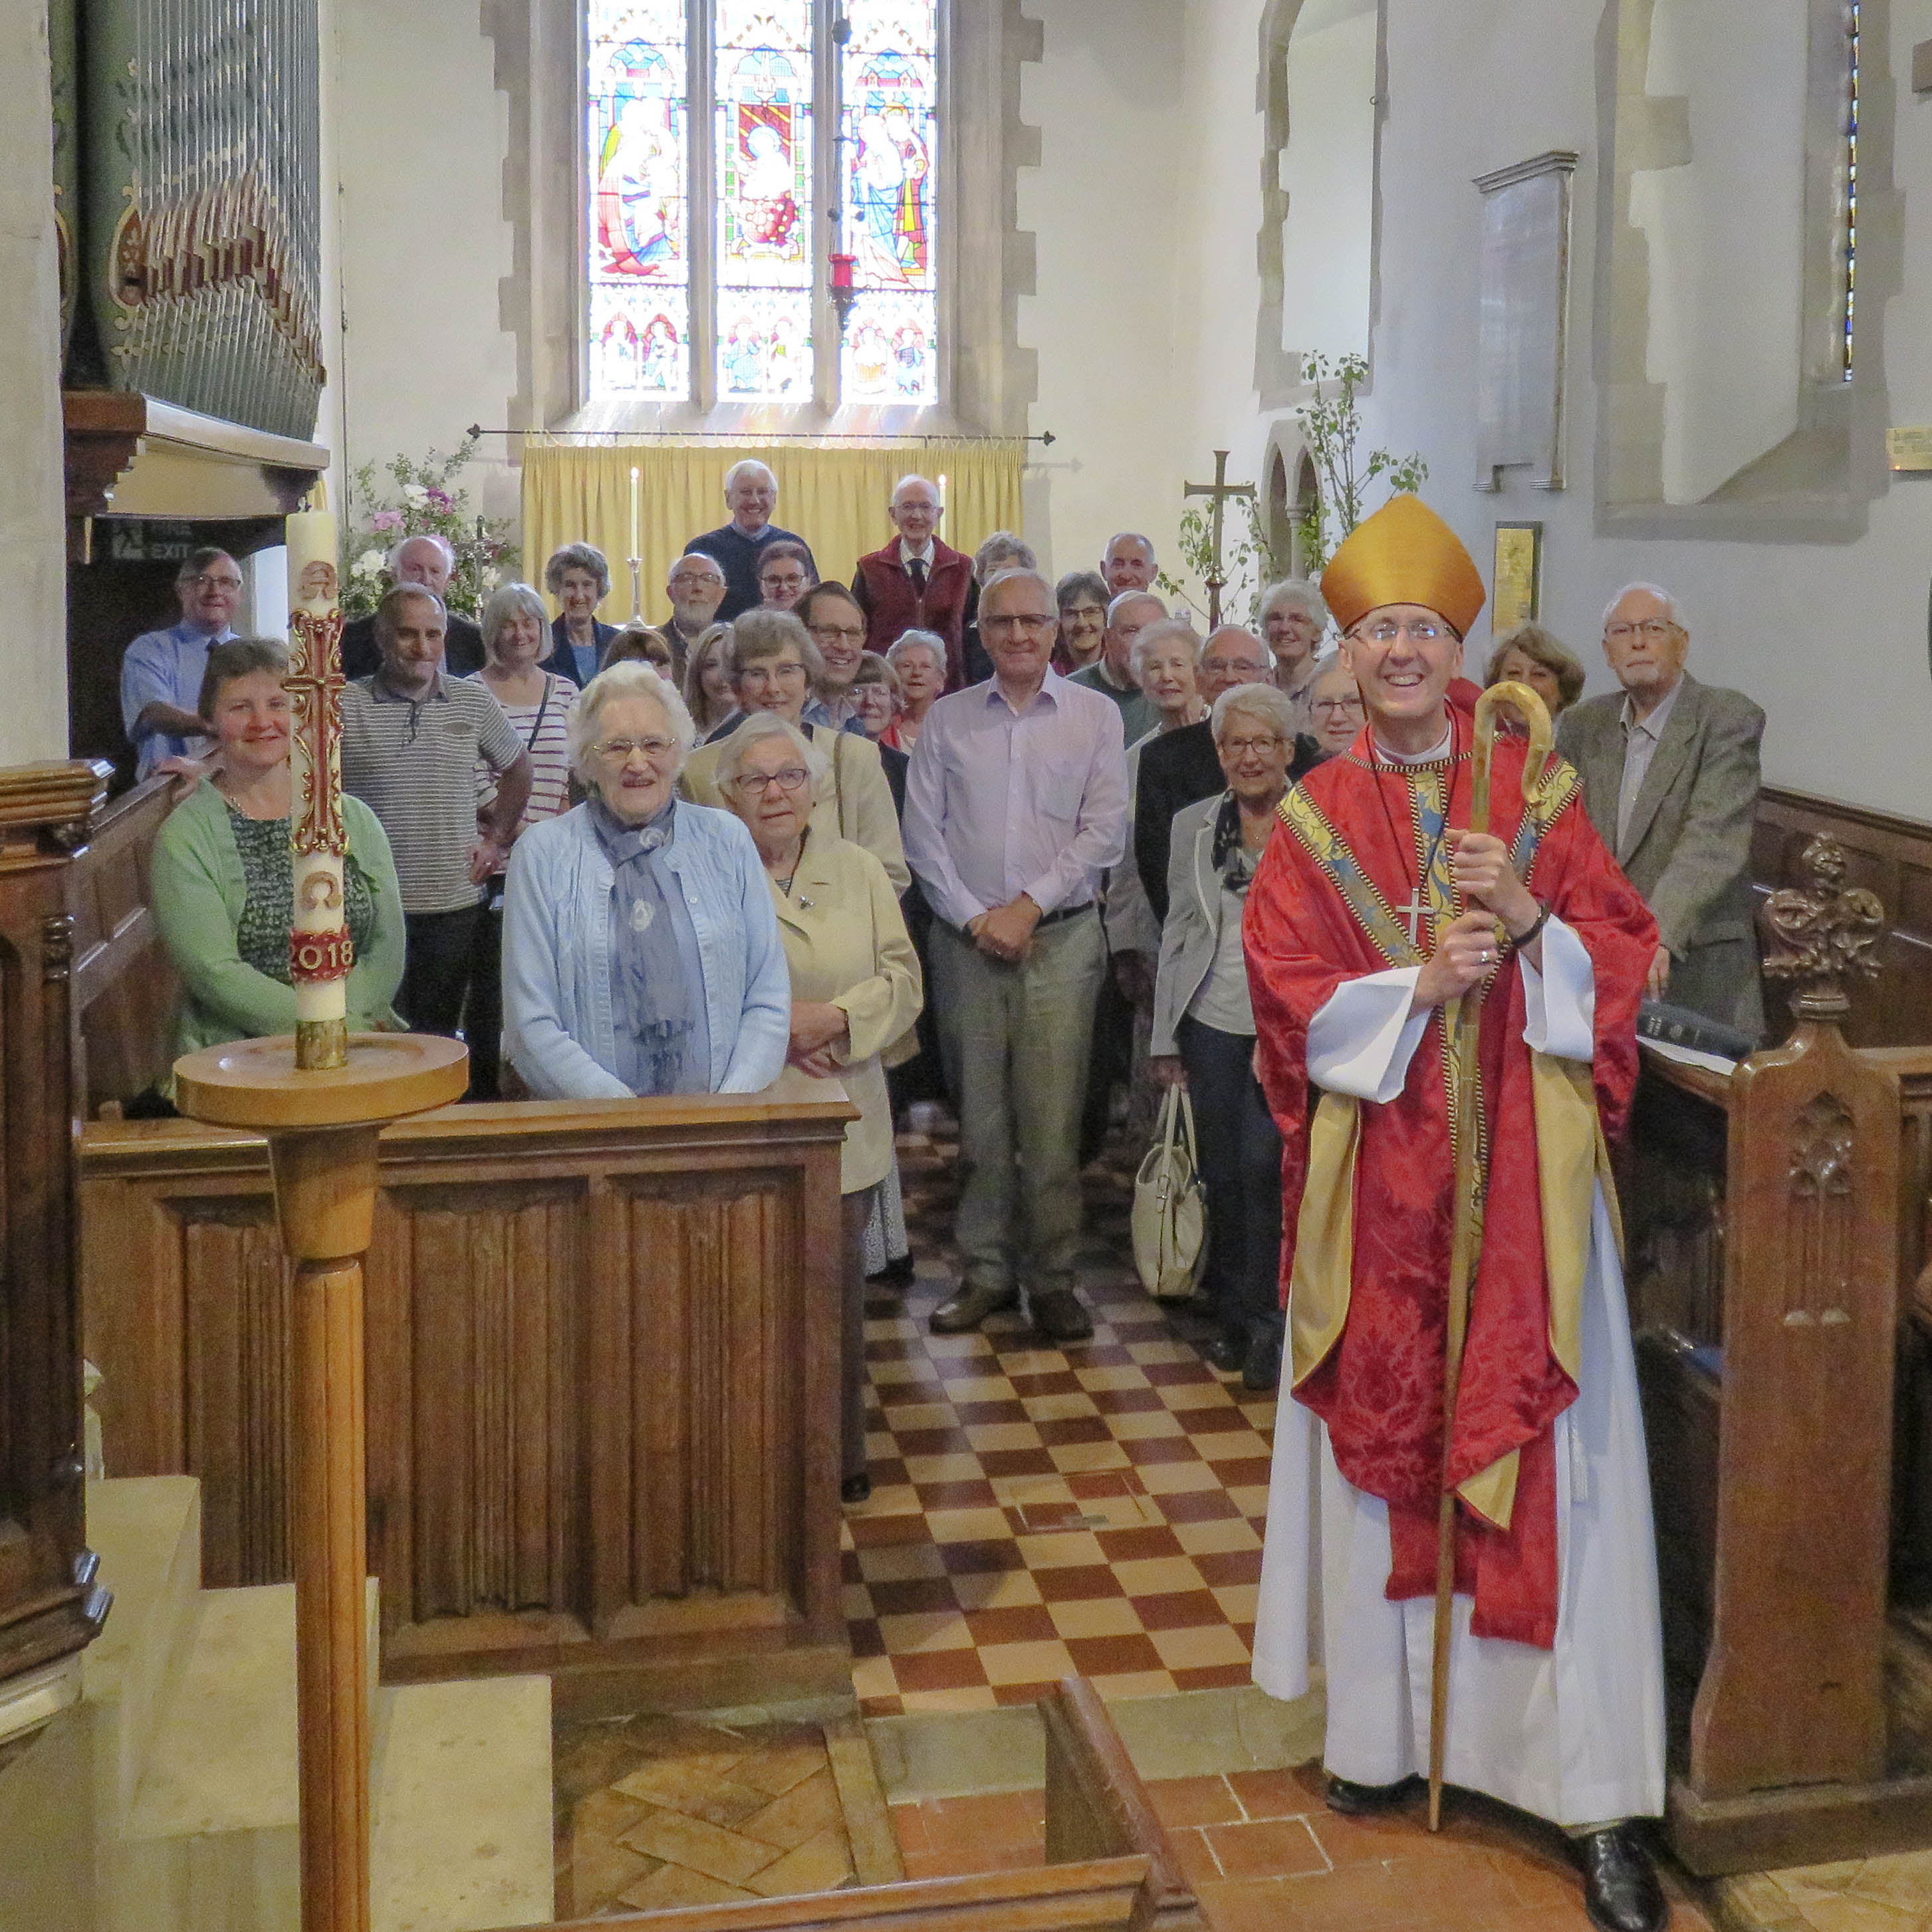 IMG 3576 Bishop of Hertford with Congregation and M  at St Ippolyts 20th May -3576